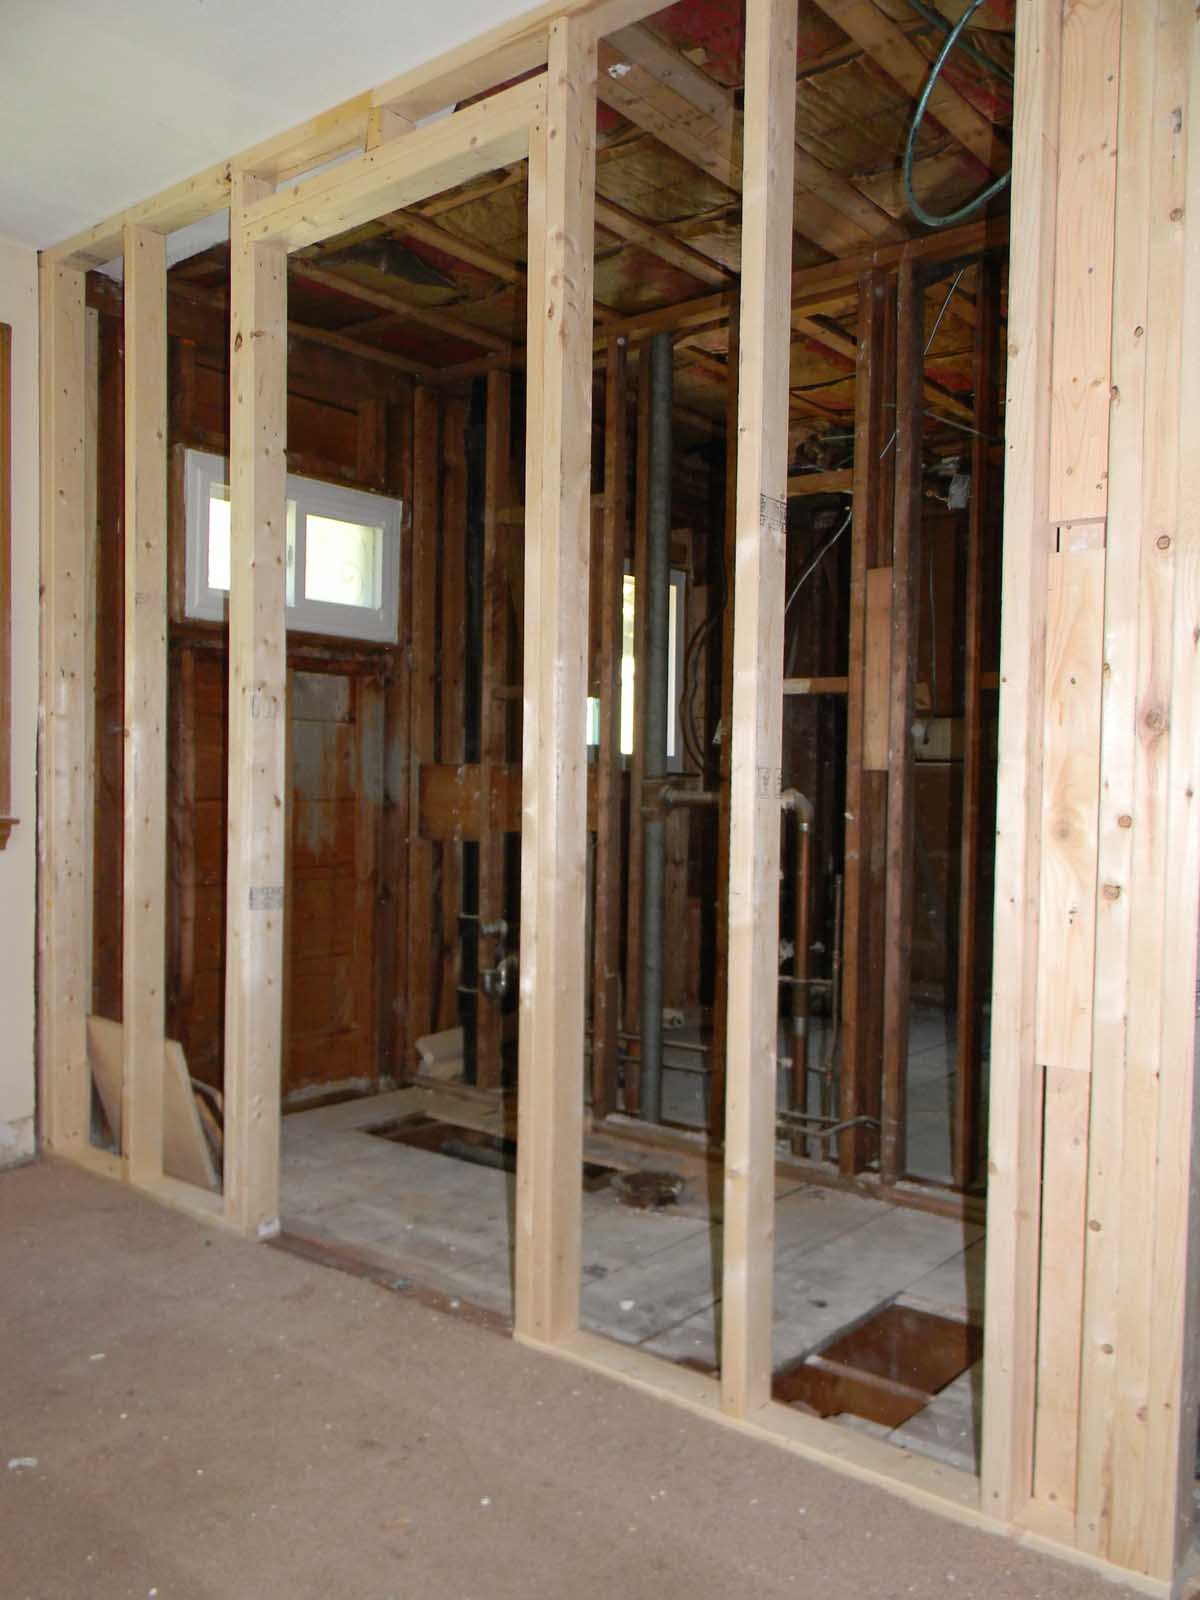 North St. Newton - bathroom renovation - studs out demo to enlarge half bathroom and add shower